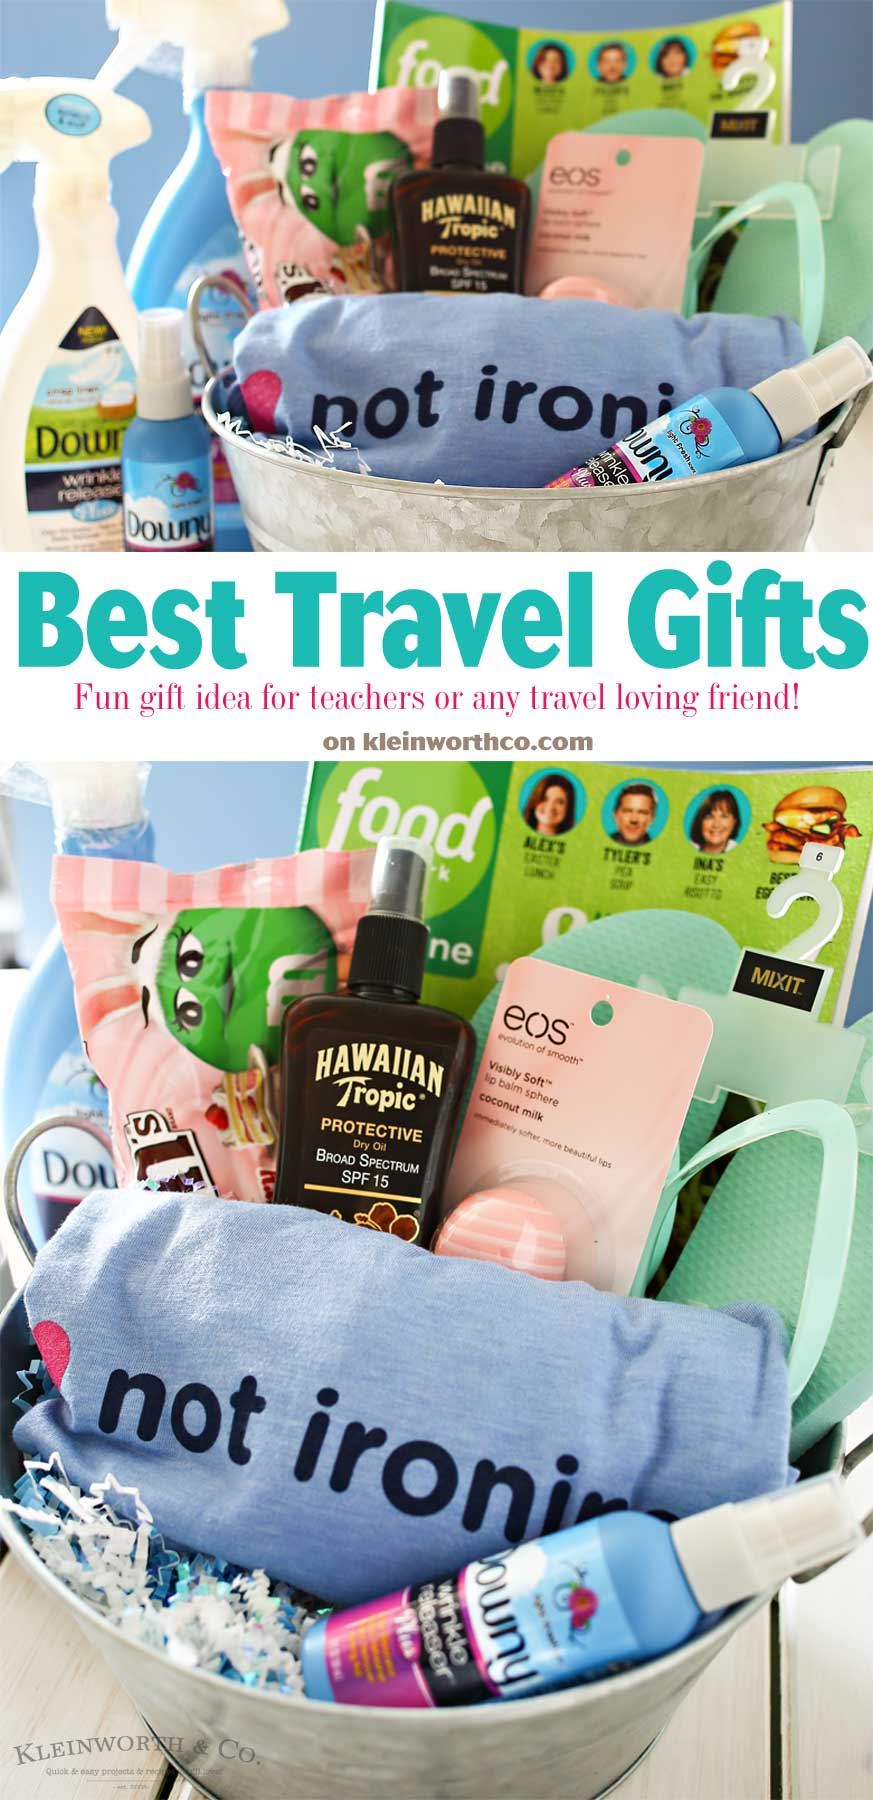 We're getting closer to travel season! Here are my <strong>Best Travel Gifts</strong> that all you jet-setters will appreciate to help stay fresh & pulled together. Just a few creature comforts with some necessities mixed in are perfect for those that are always on the go or just getting ready to set off on an epic trip.